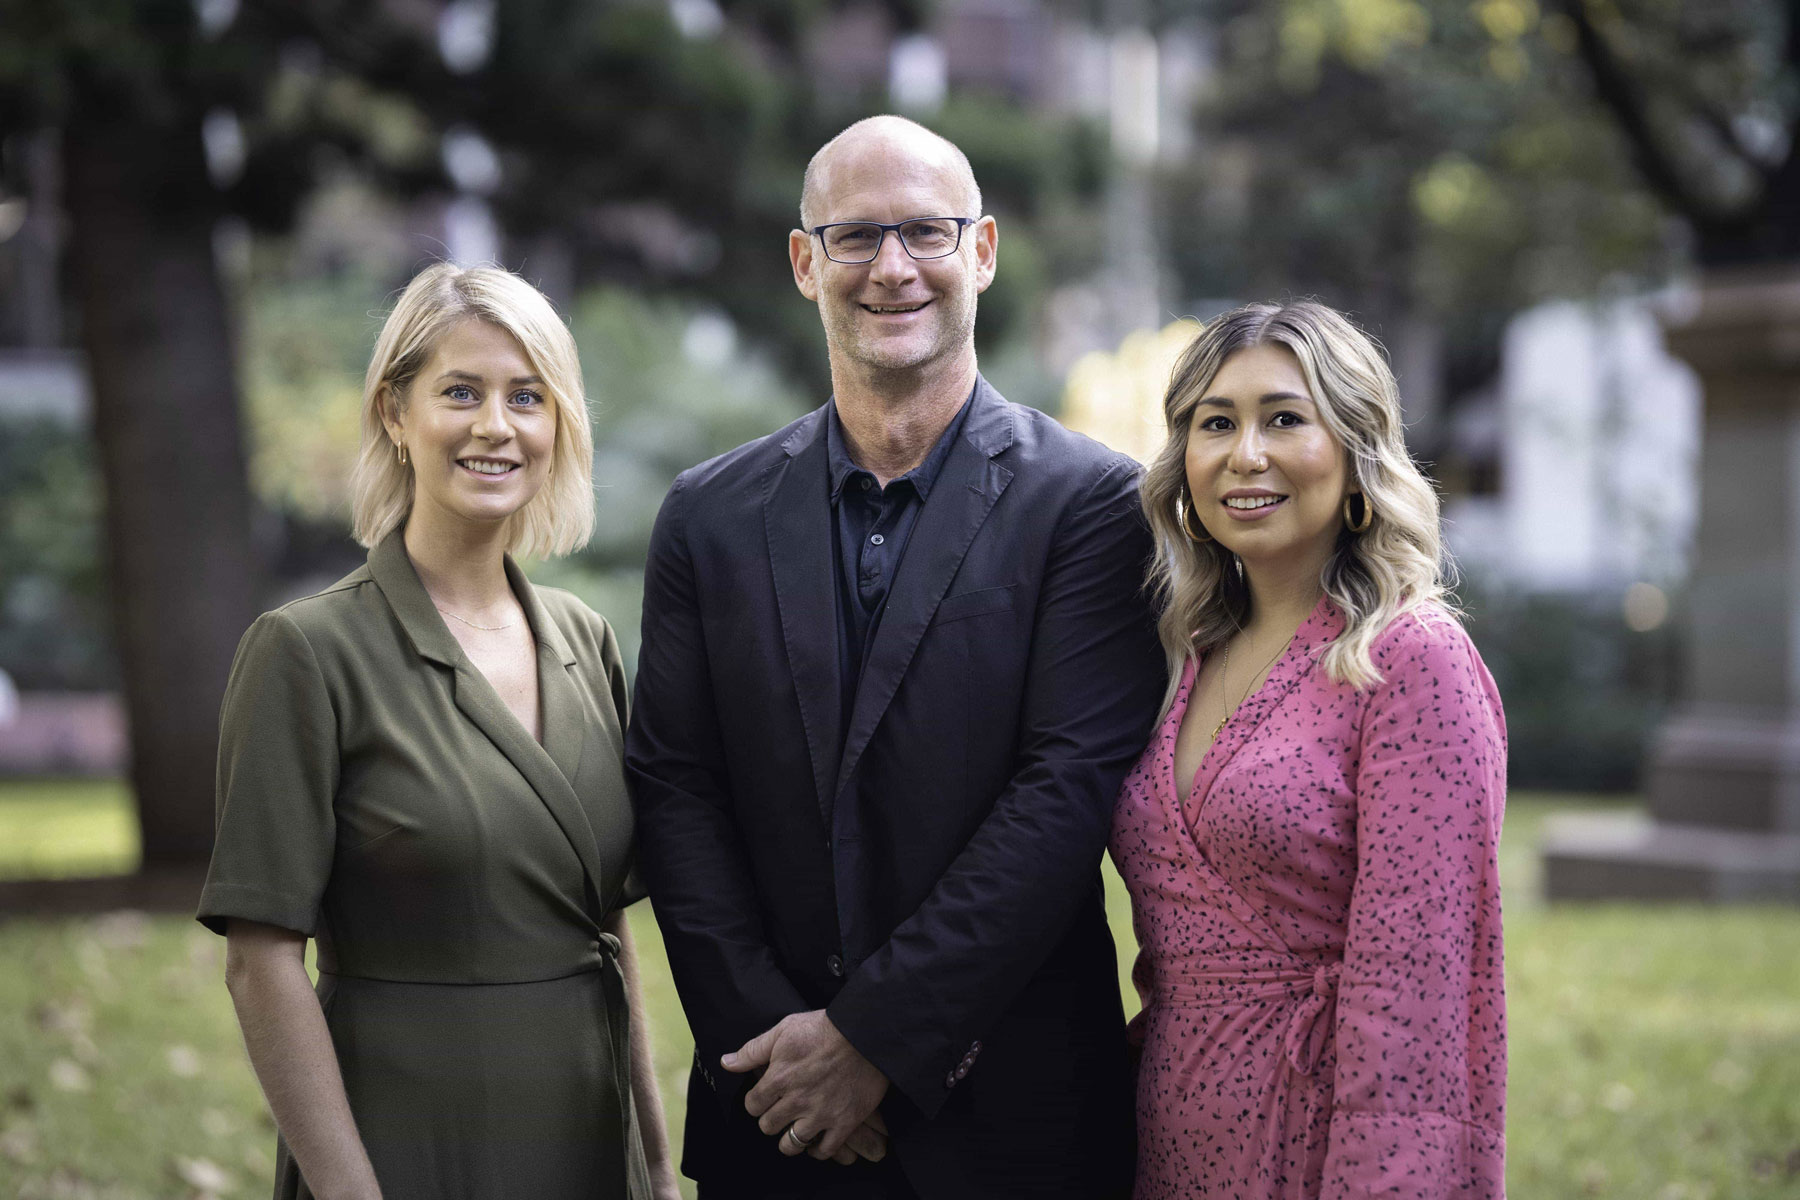 The Works refreshes leadership team